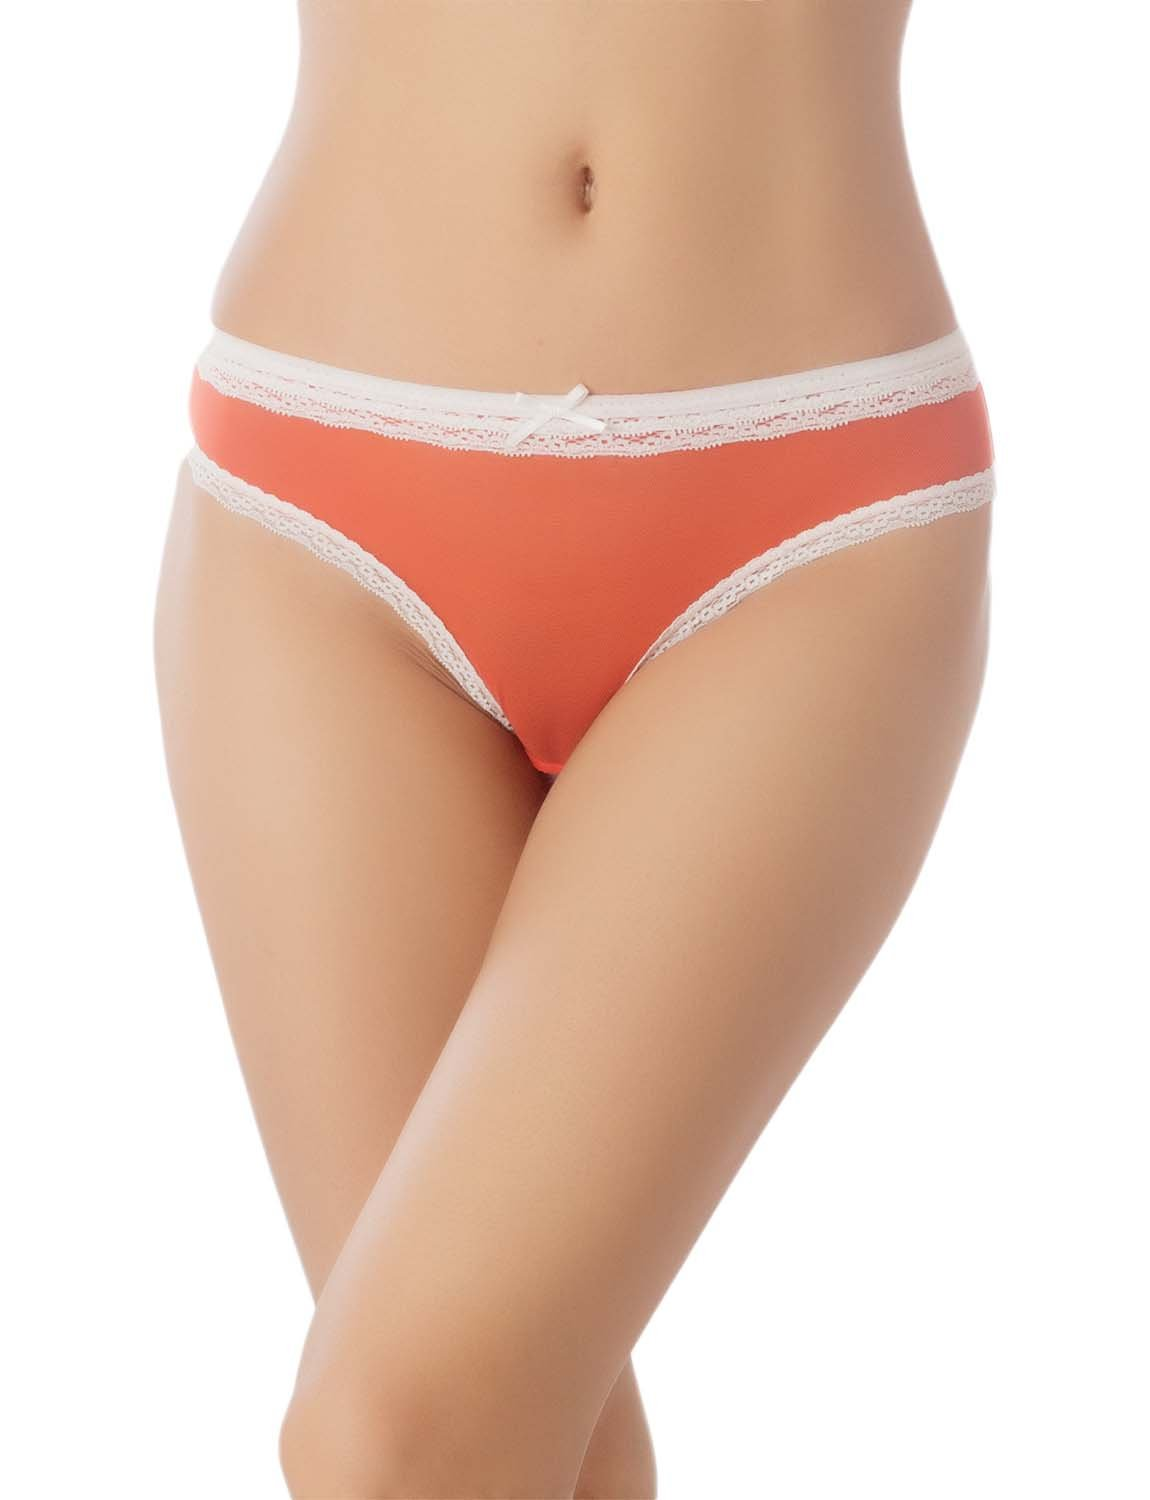 Women's Cotton Layered Lace Trimmed See-Through Mesh Low Rise Bikini Panty, Size: L, Coral